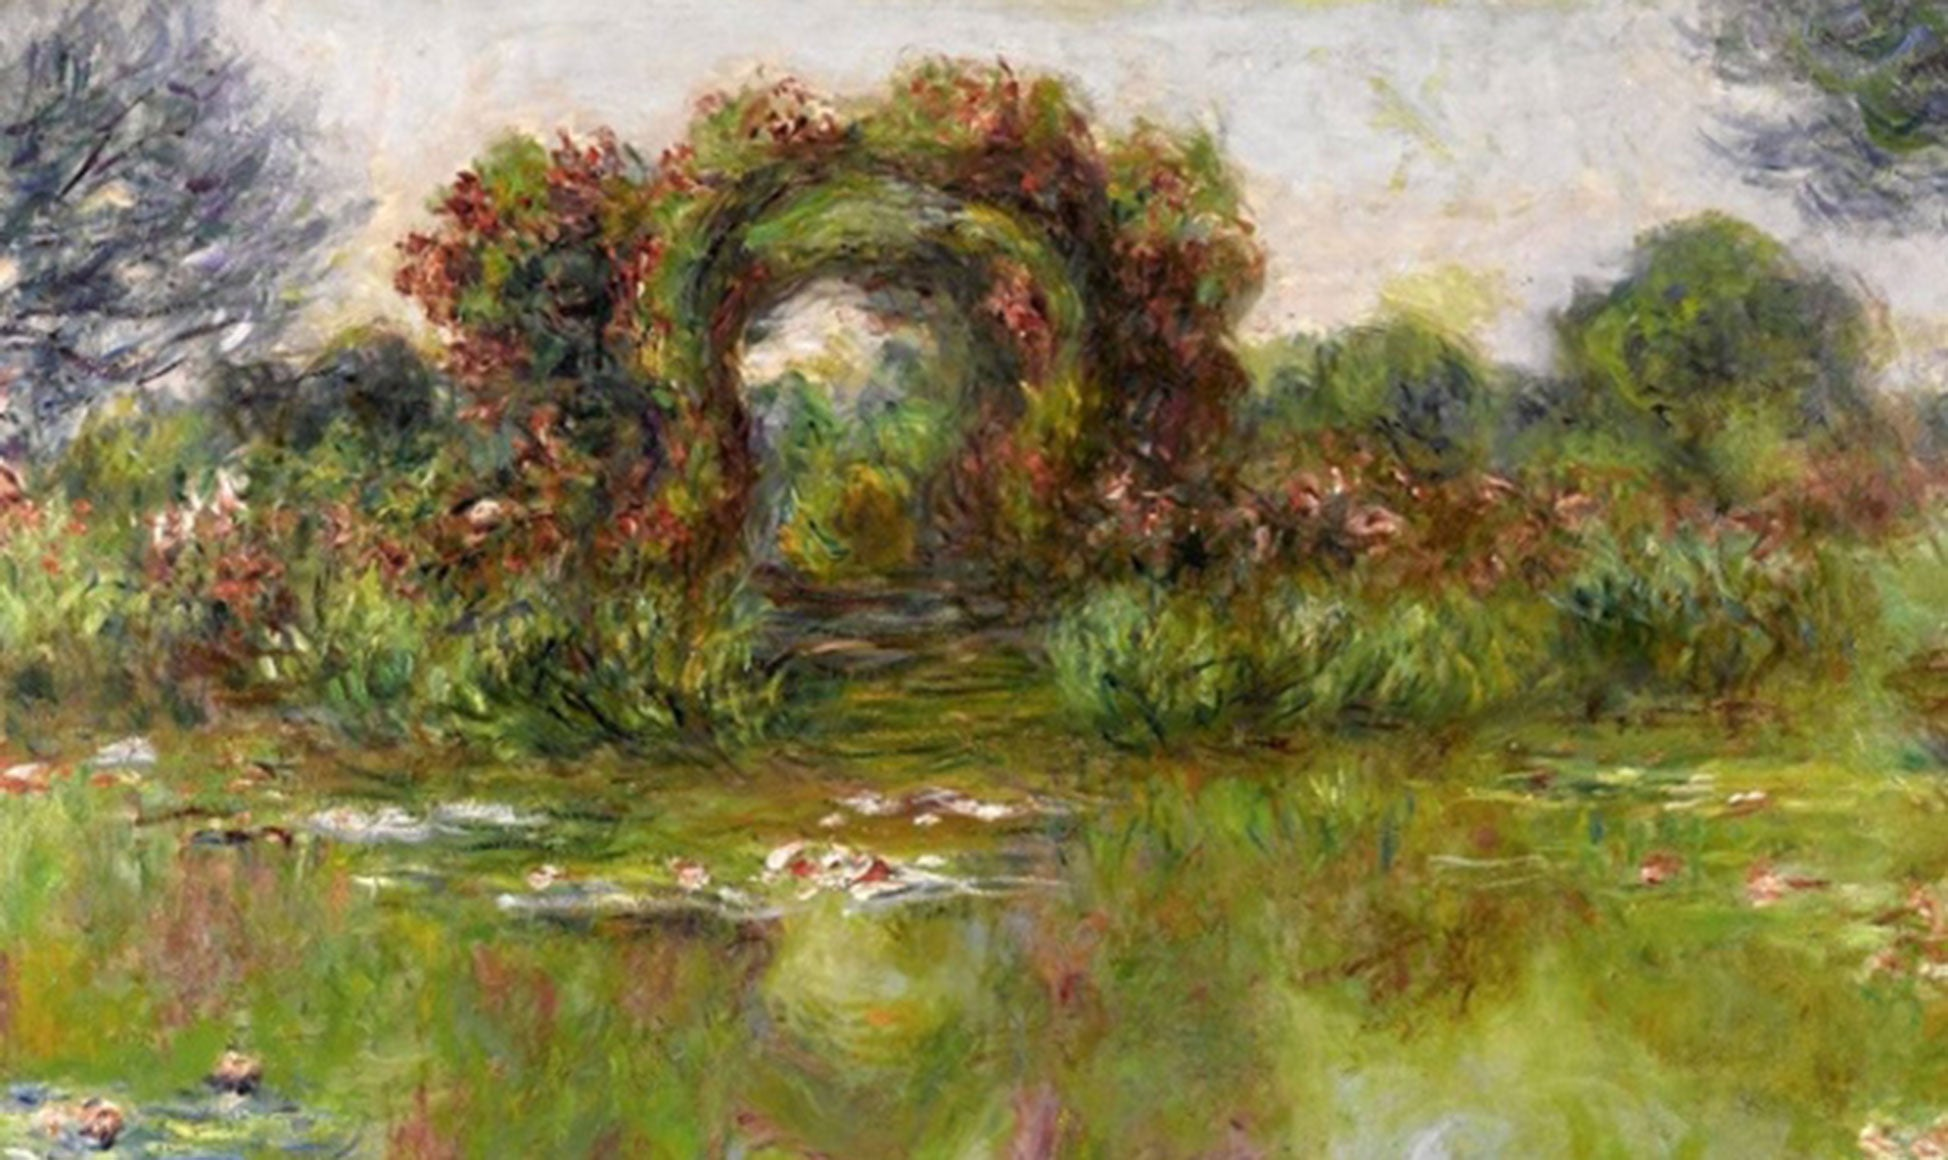 Monet paintings expected to fetch up to $110m at New York auction